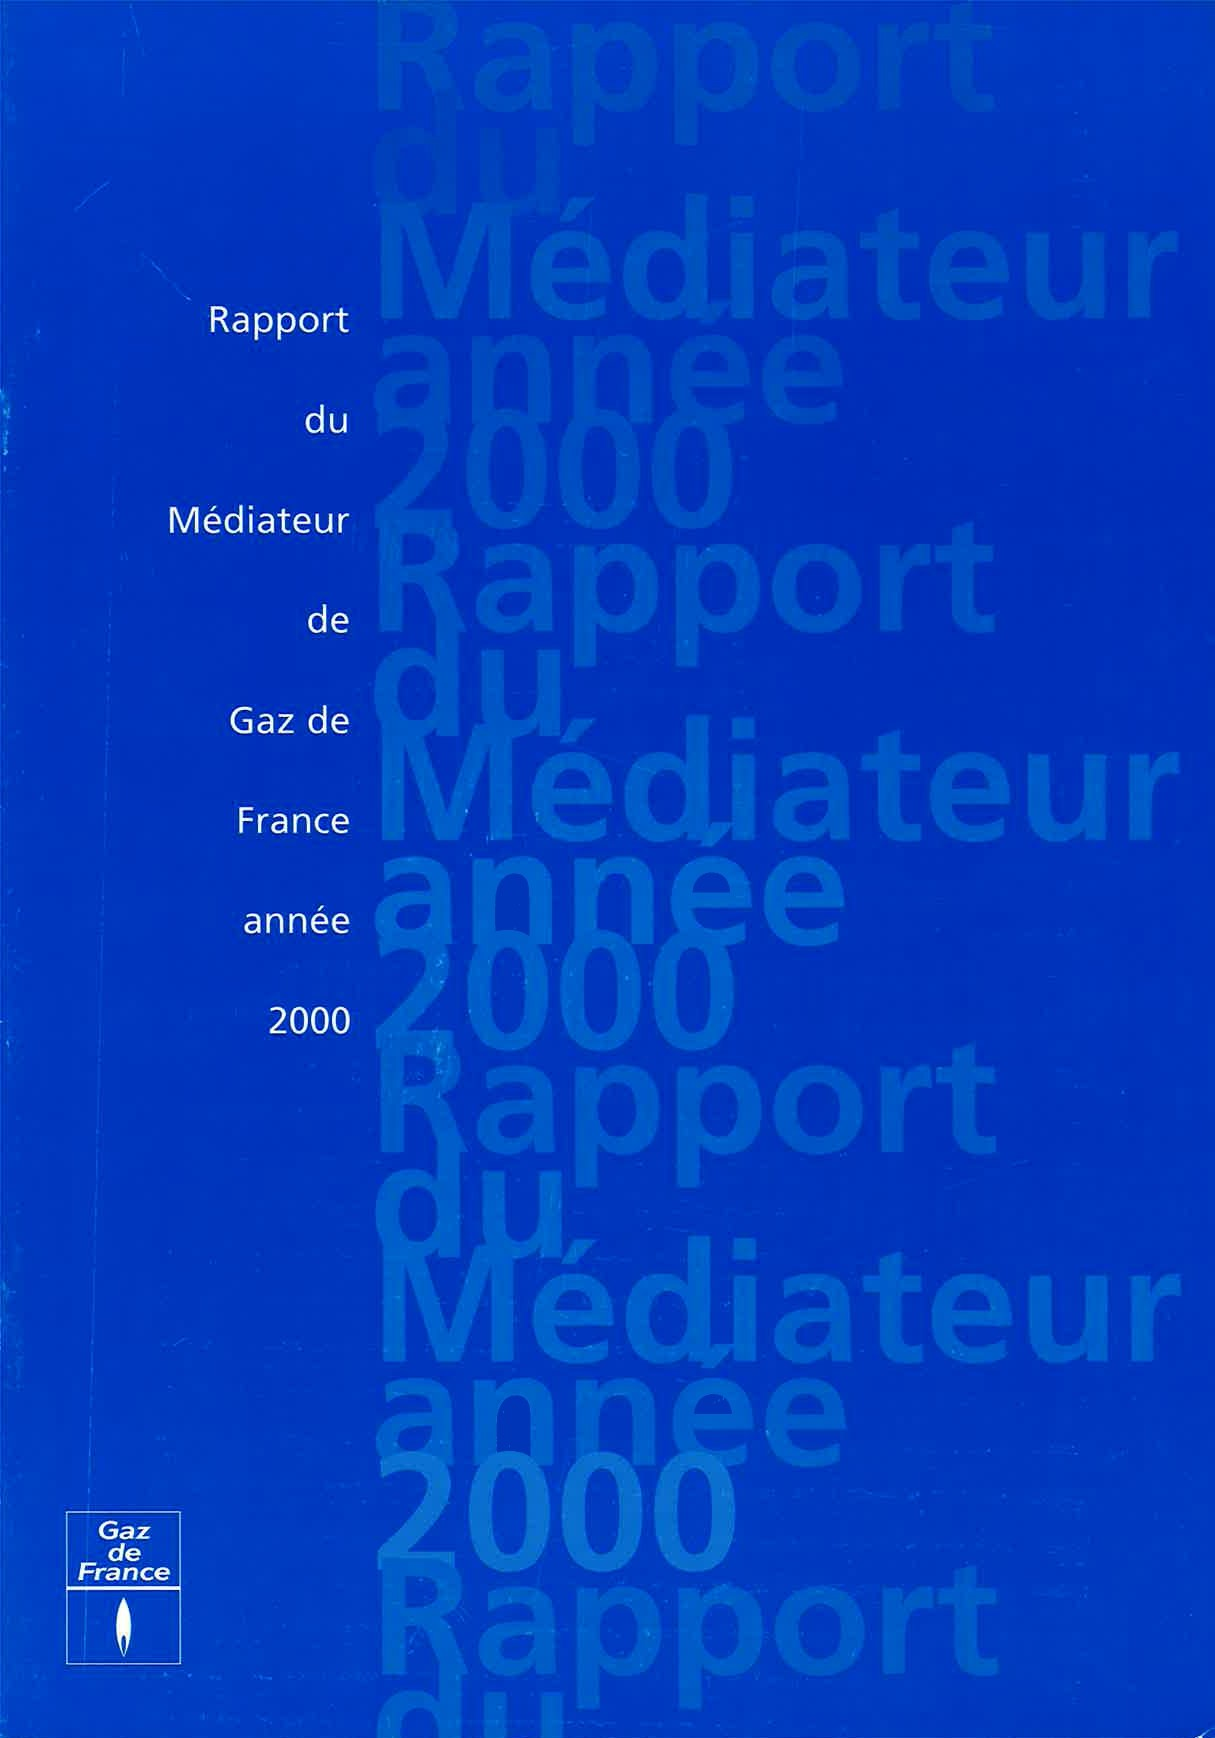 Rapport 2000